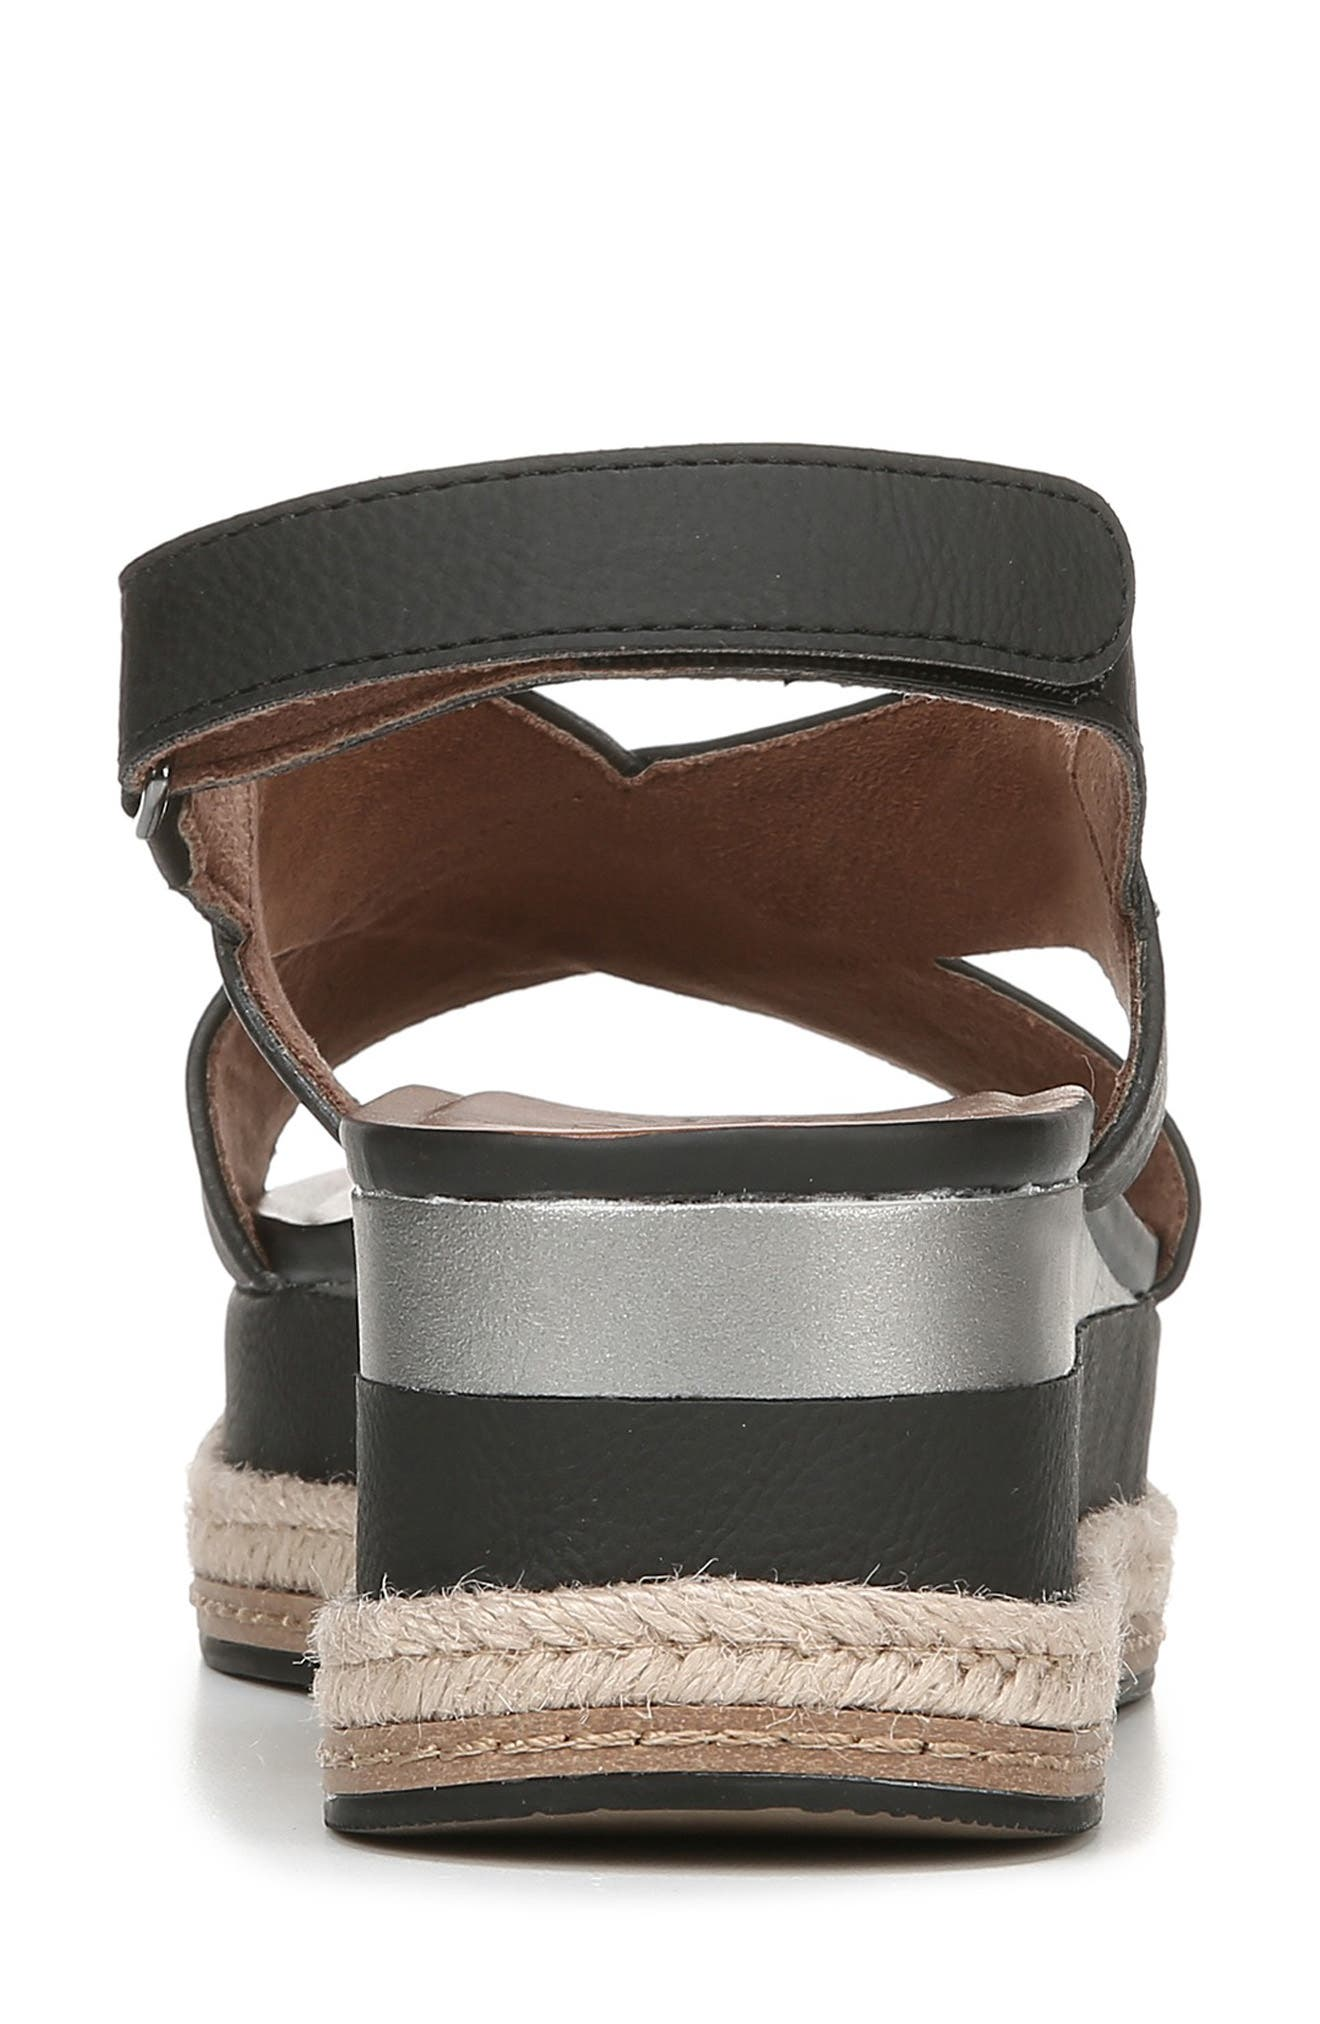 NATURALIZER, Baya Espadrille Wedge Sandal, Alternate thumbnail 7, color, BLACK NUBUCK LEATHER